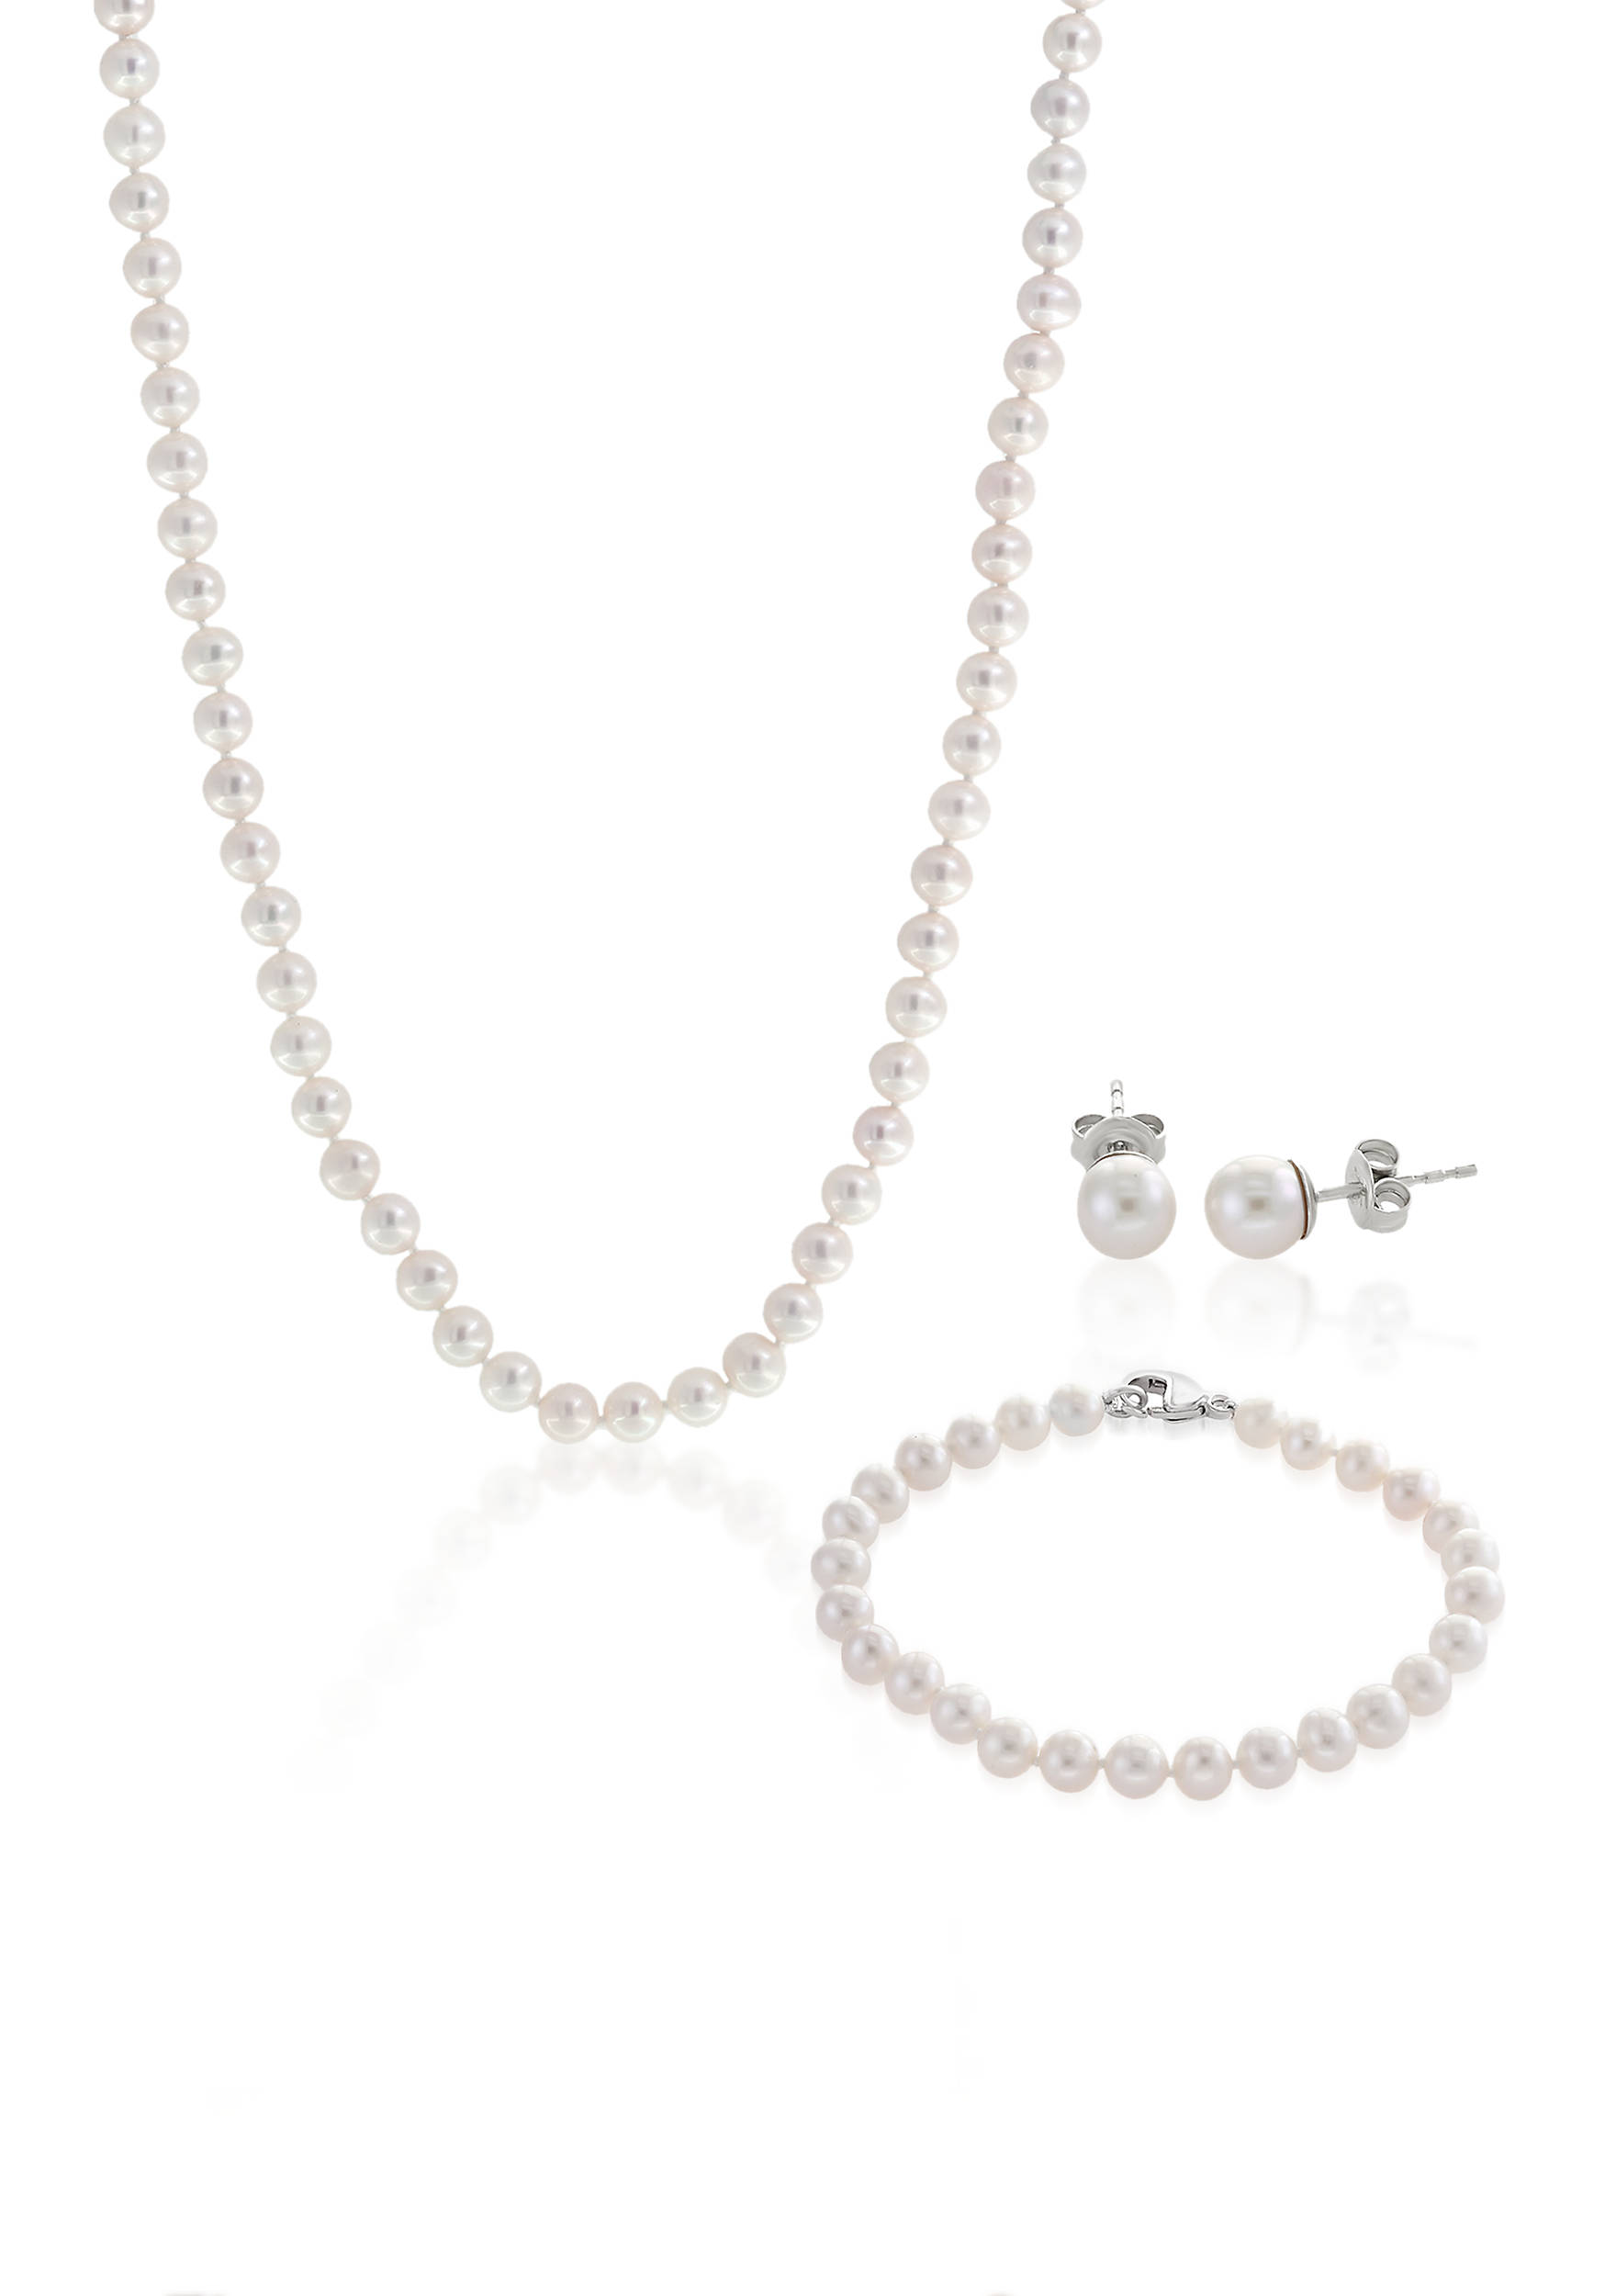 Sterling Silver Freshwater Pearl Necklace Earrings And Bracelet Set